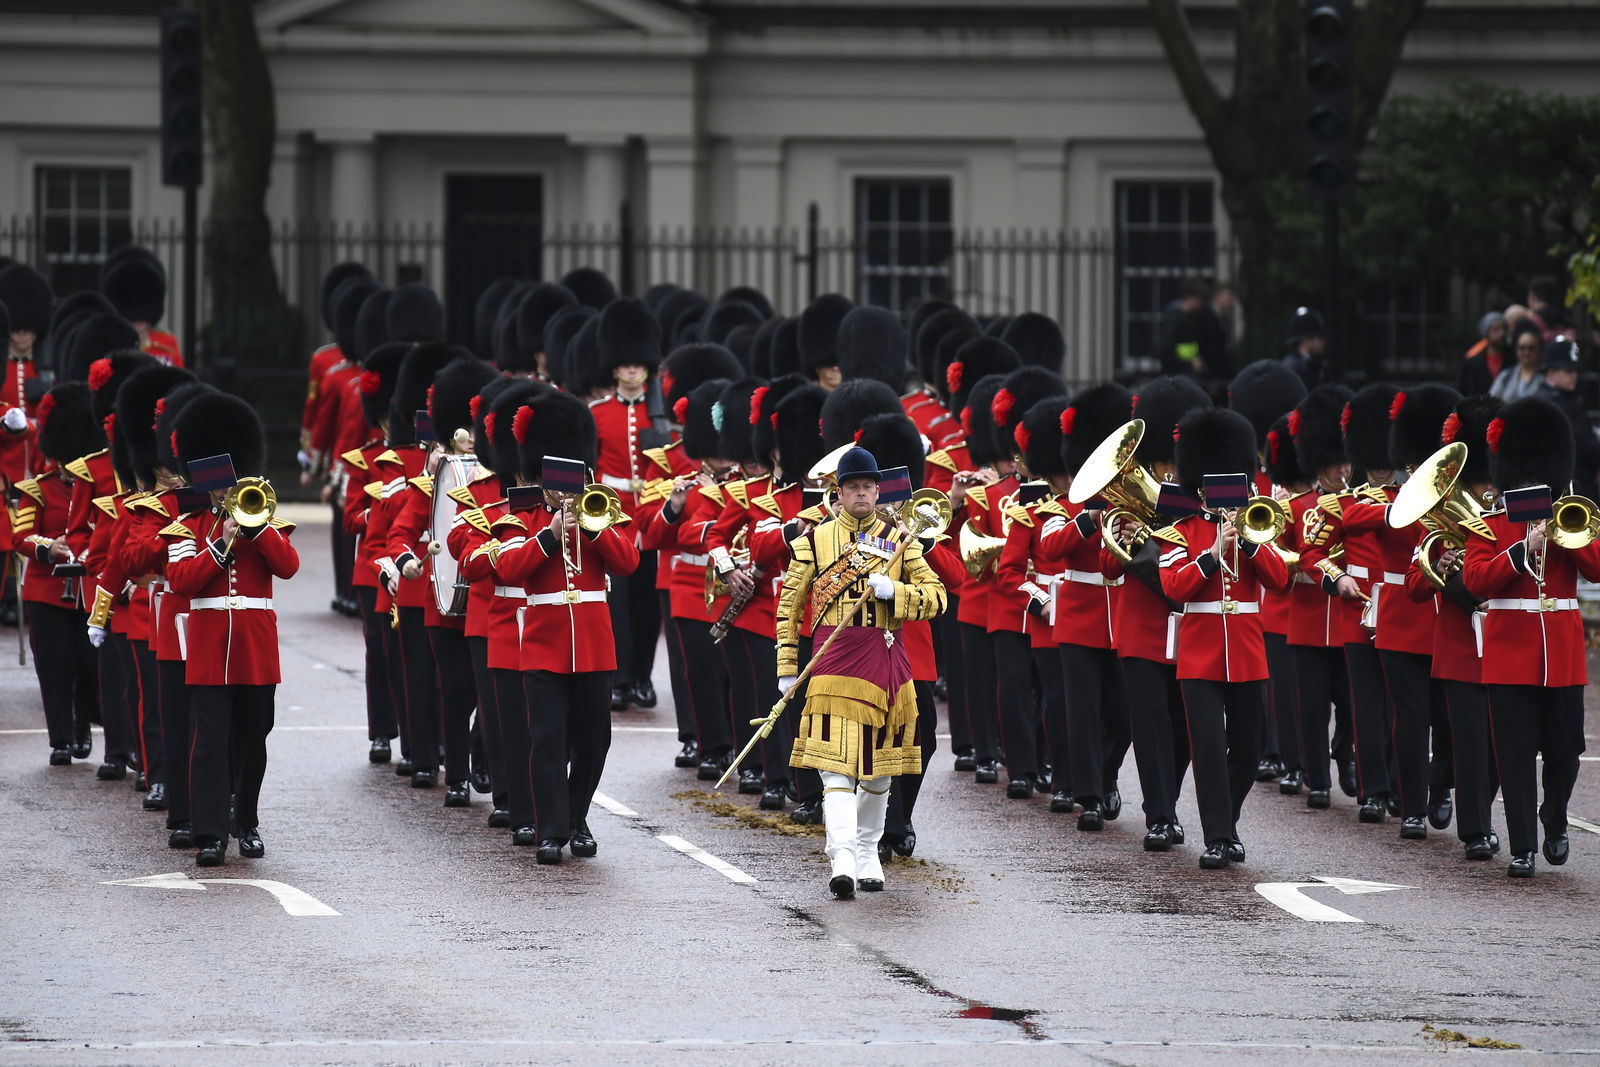 Members of the armed forces march along The Mall ahead of the State Opening of Parliament ceremony in London, Monday, Oct. 14, 2019. (AP Photo/Alberto Pezzali)